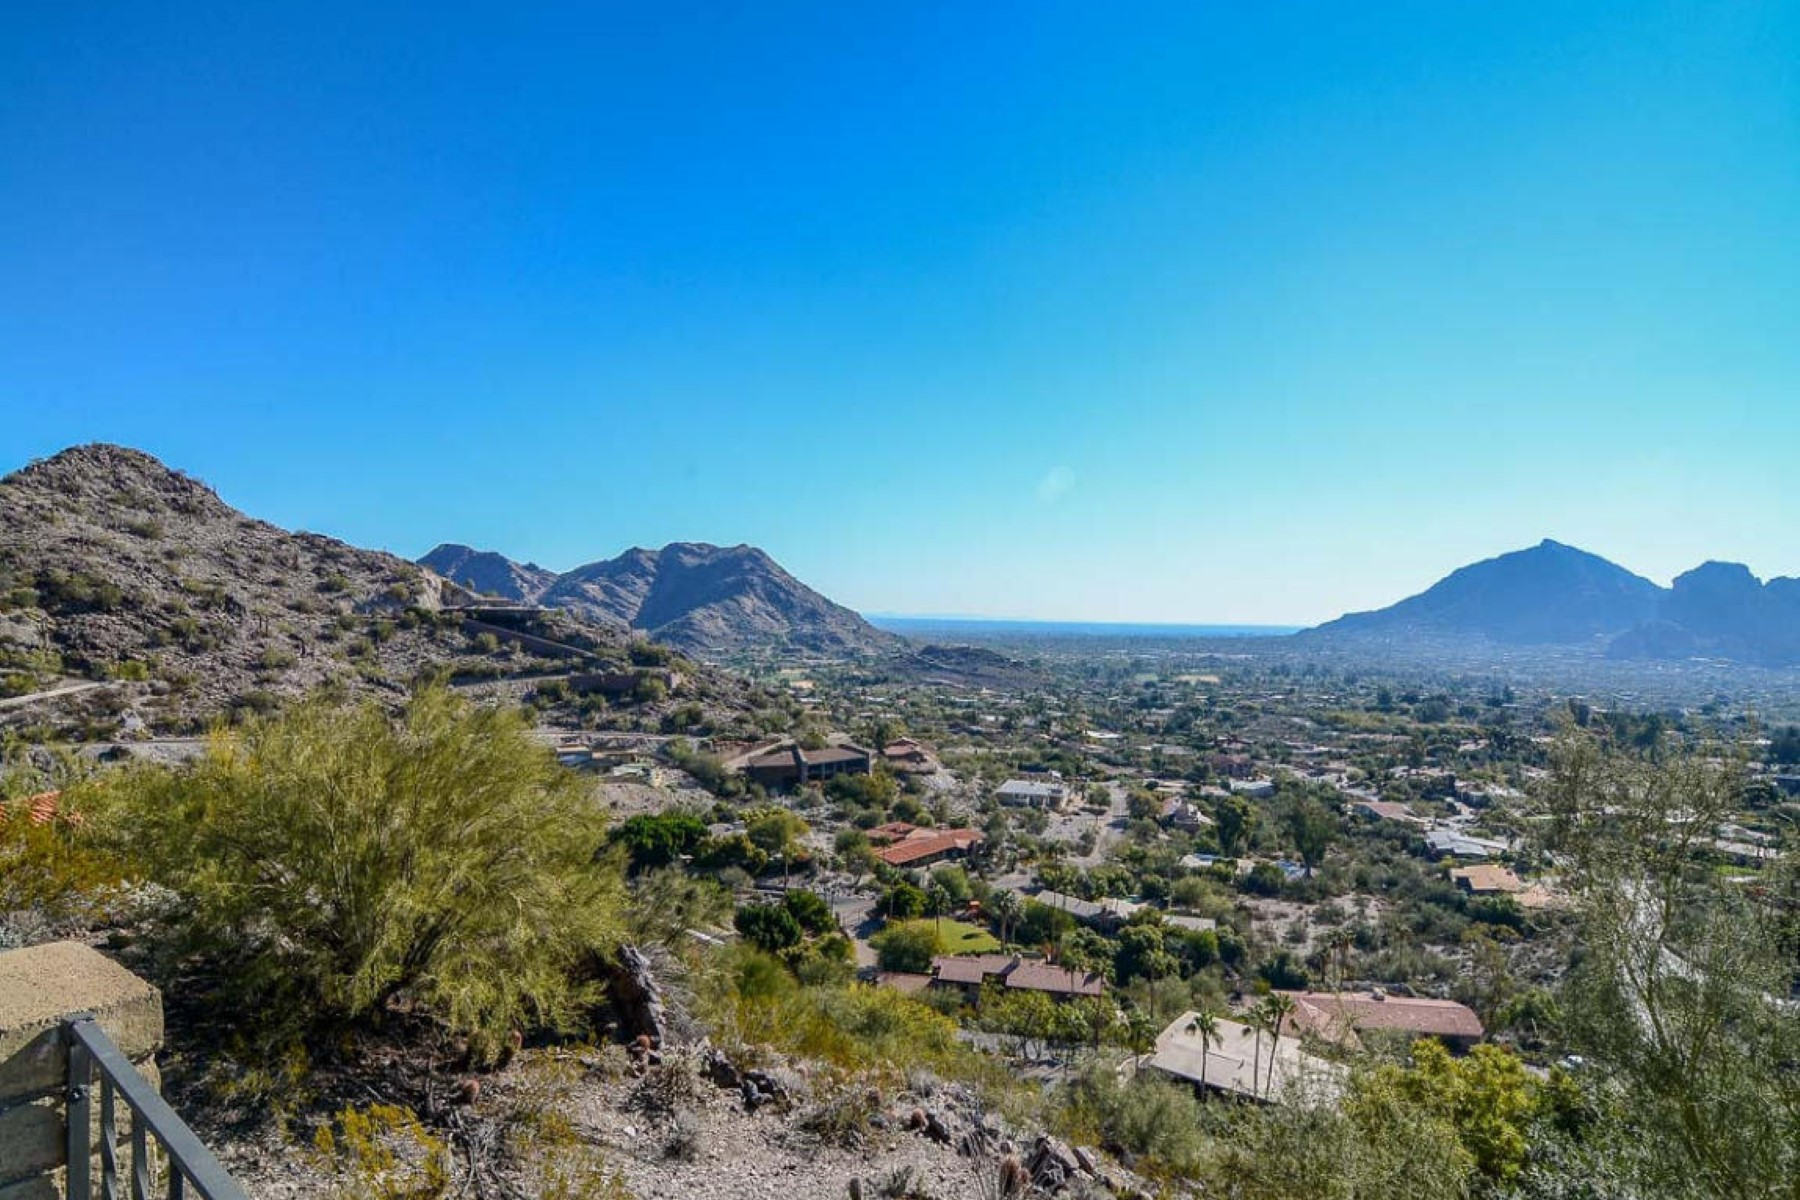 Property Of Amazing home on a large desert wash with hiking trails